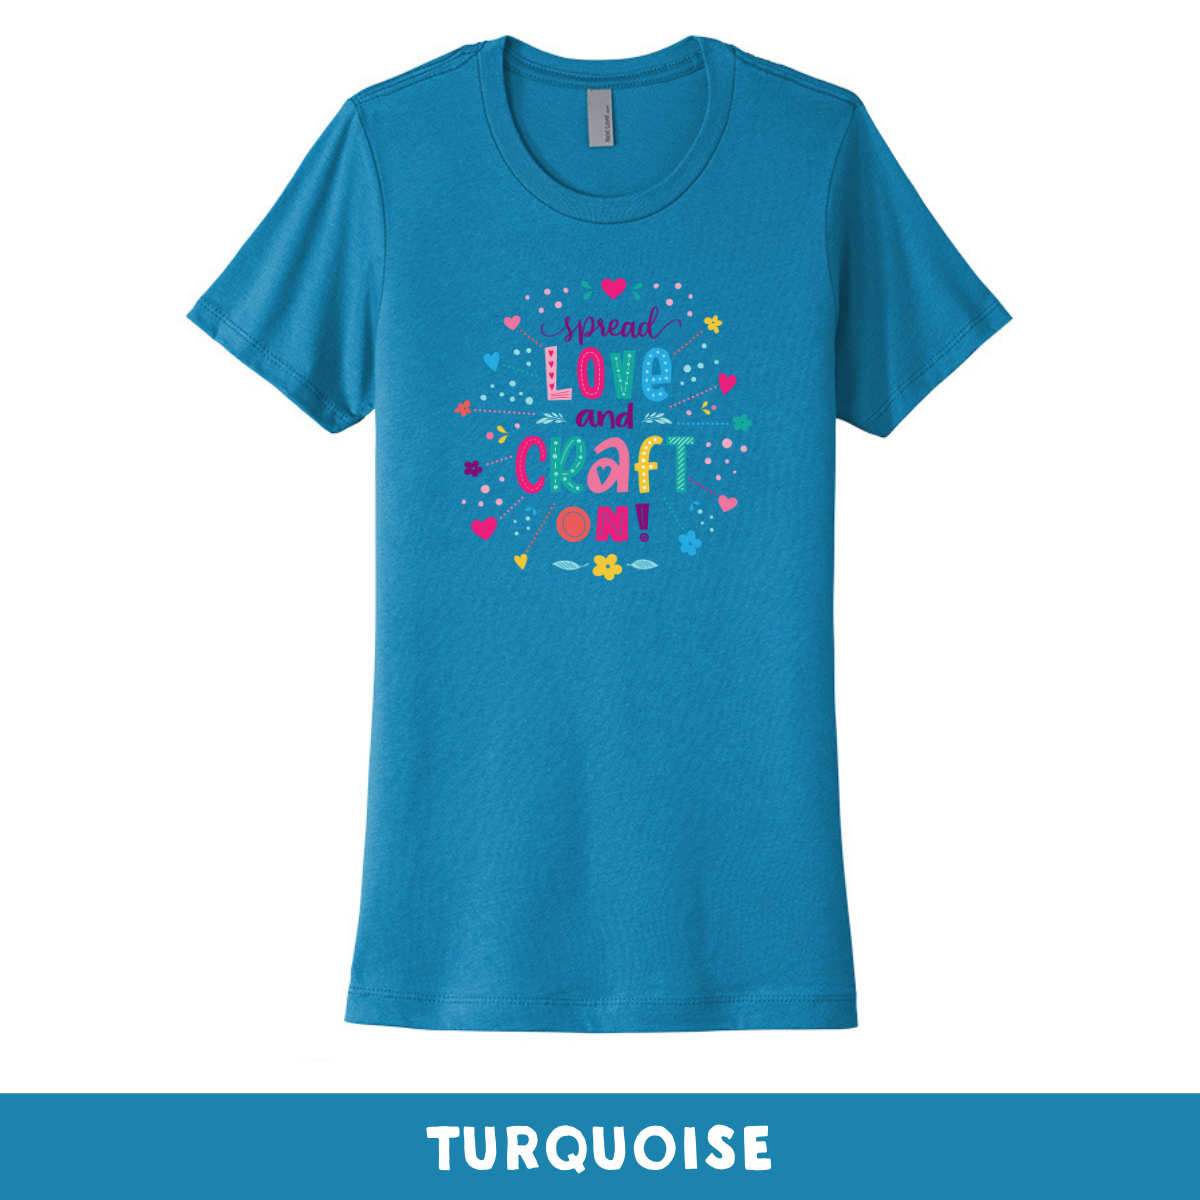 Turquoise - Crew Neck Boyfriend Tee - Spread Love and Craft On